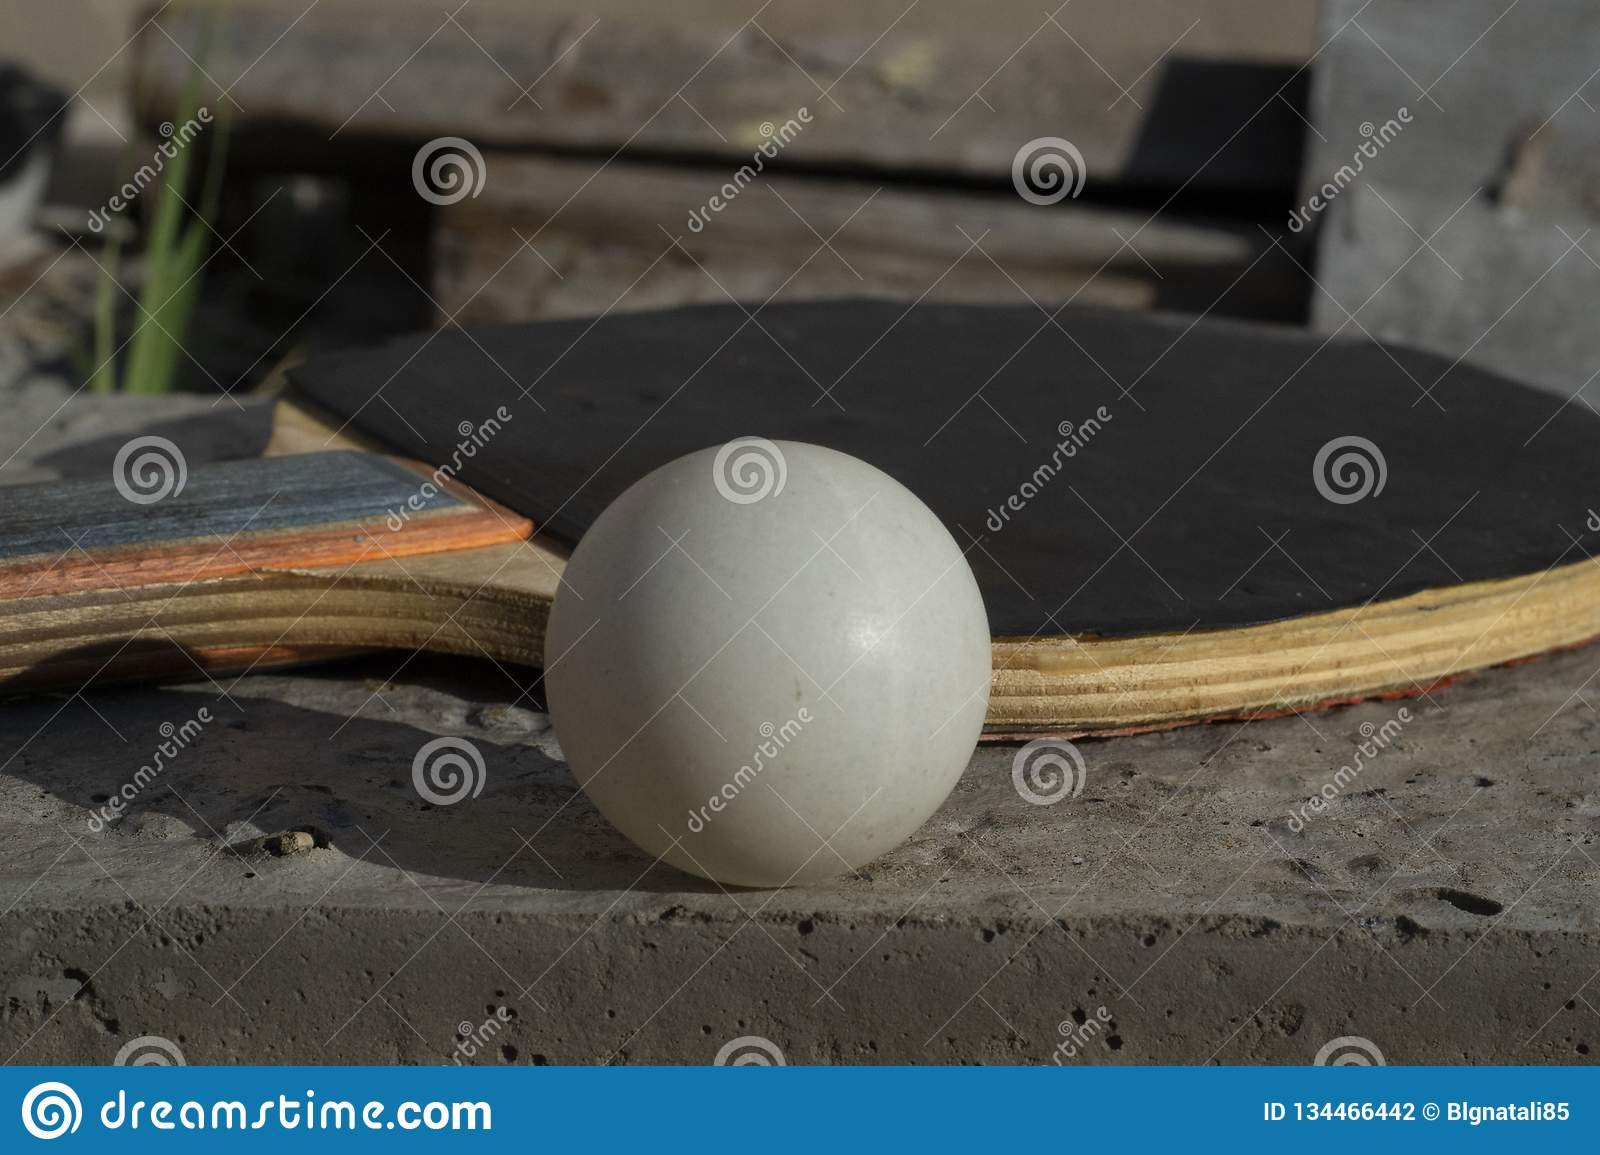 Close-up of a racket and ball for playing table tennis with a soft background